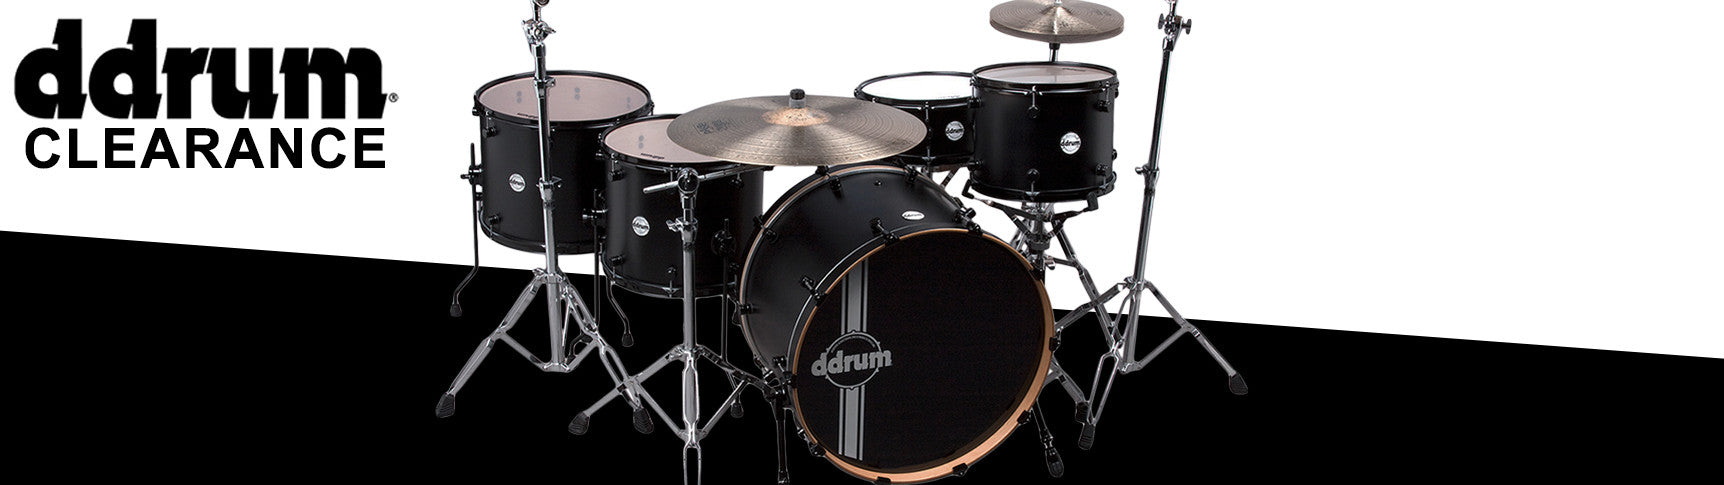 ddrum Clearance